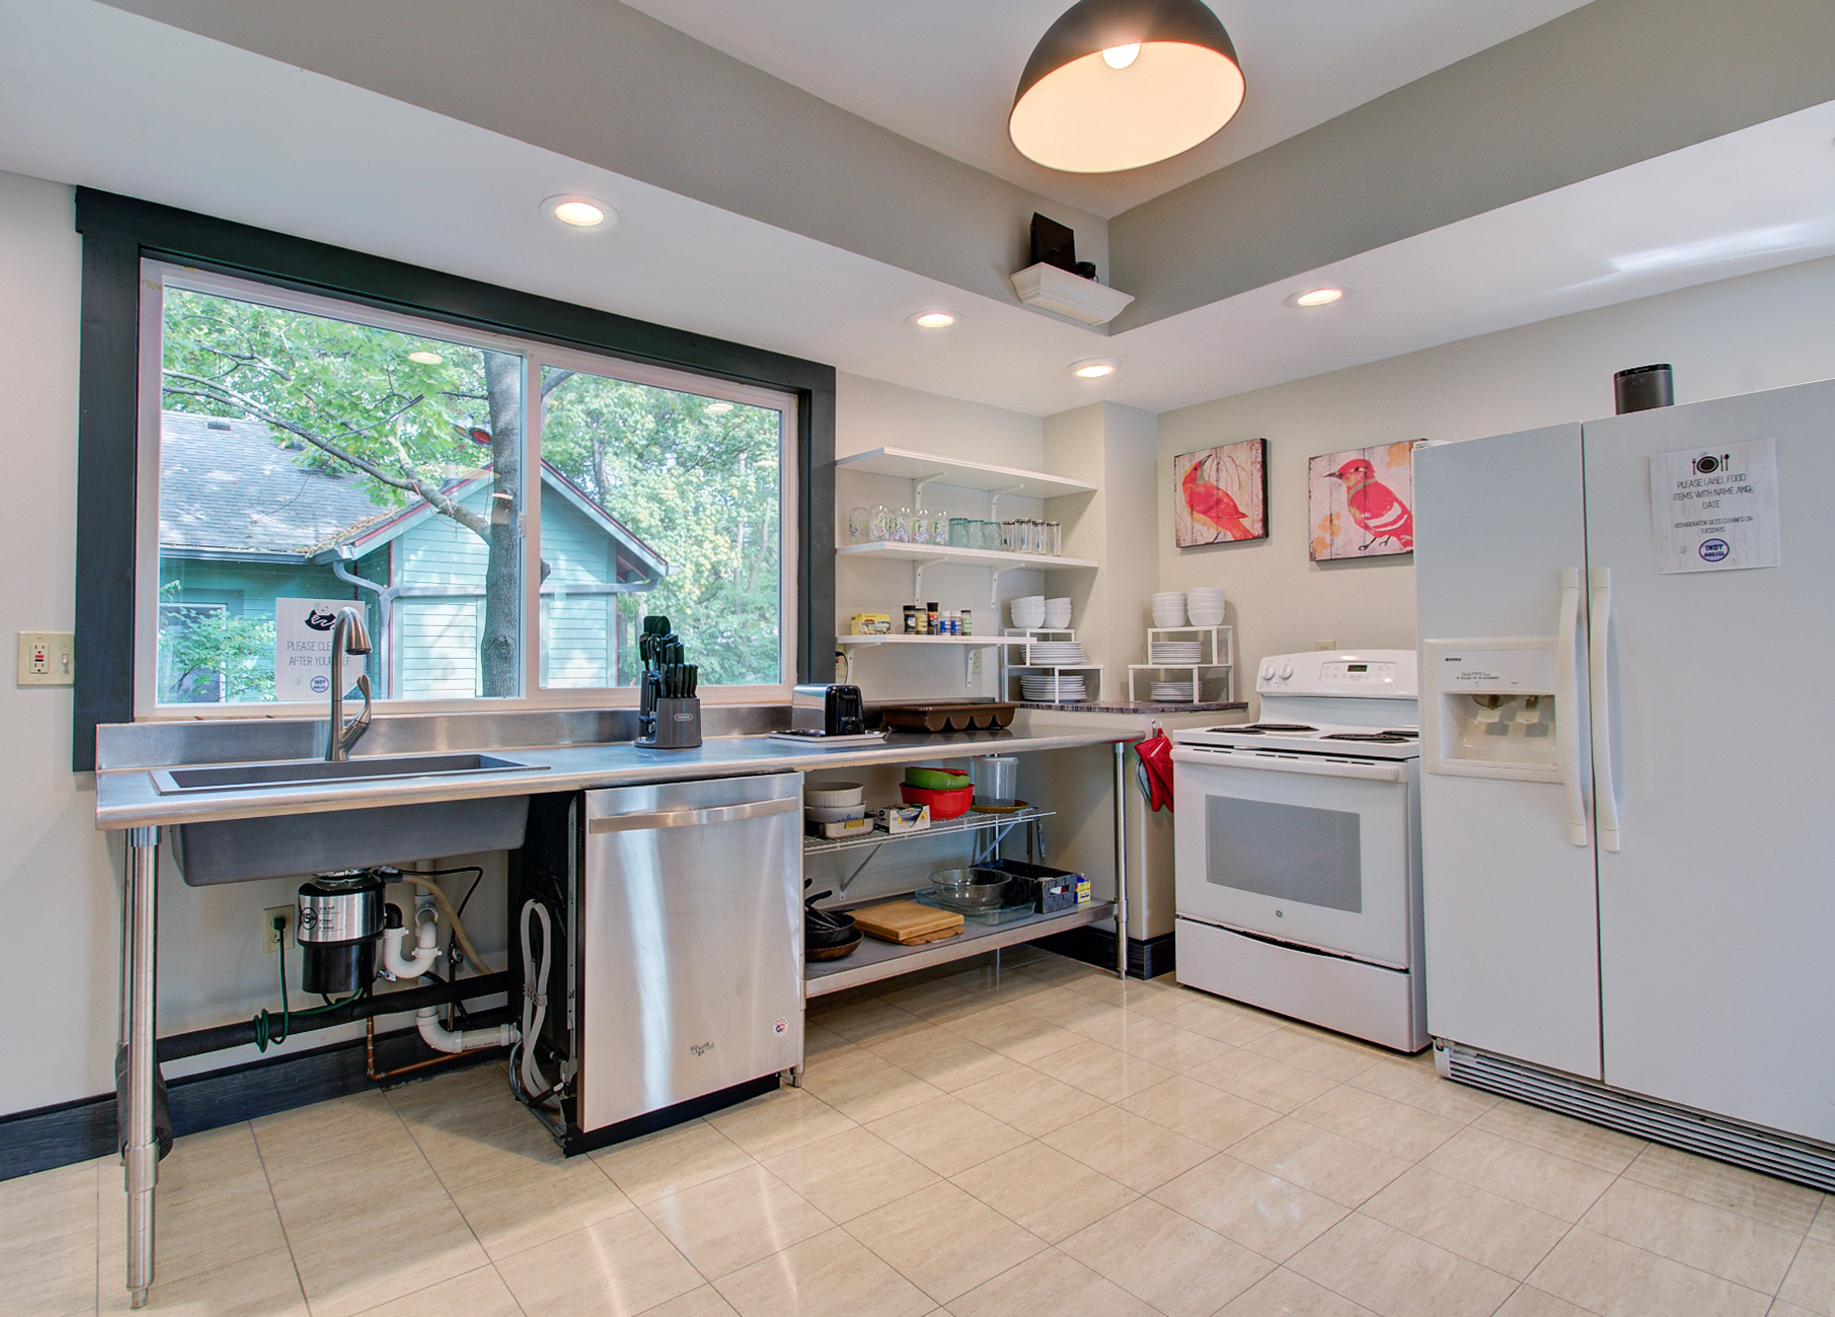 One of the two full kitchens available for full house rental